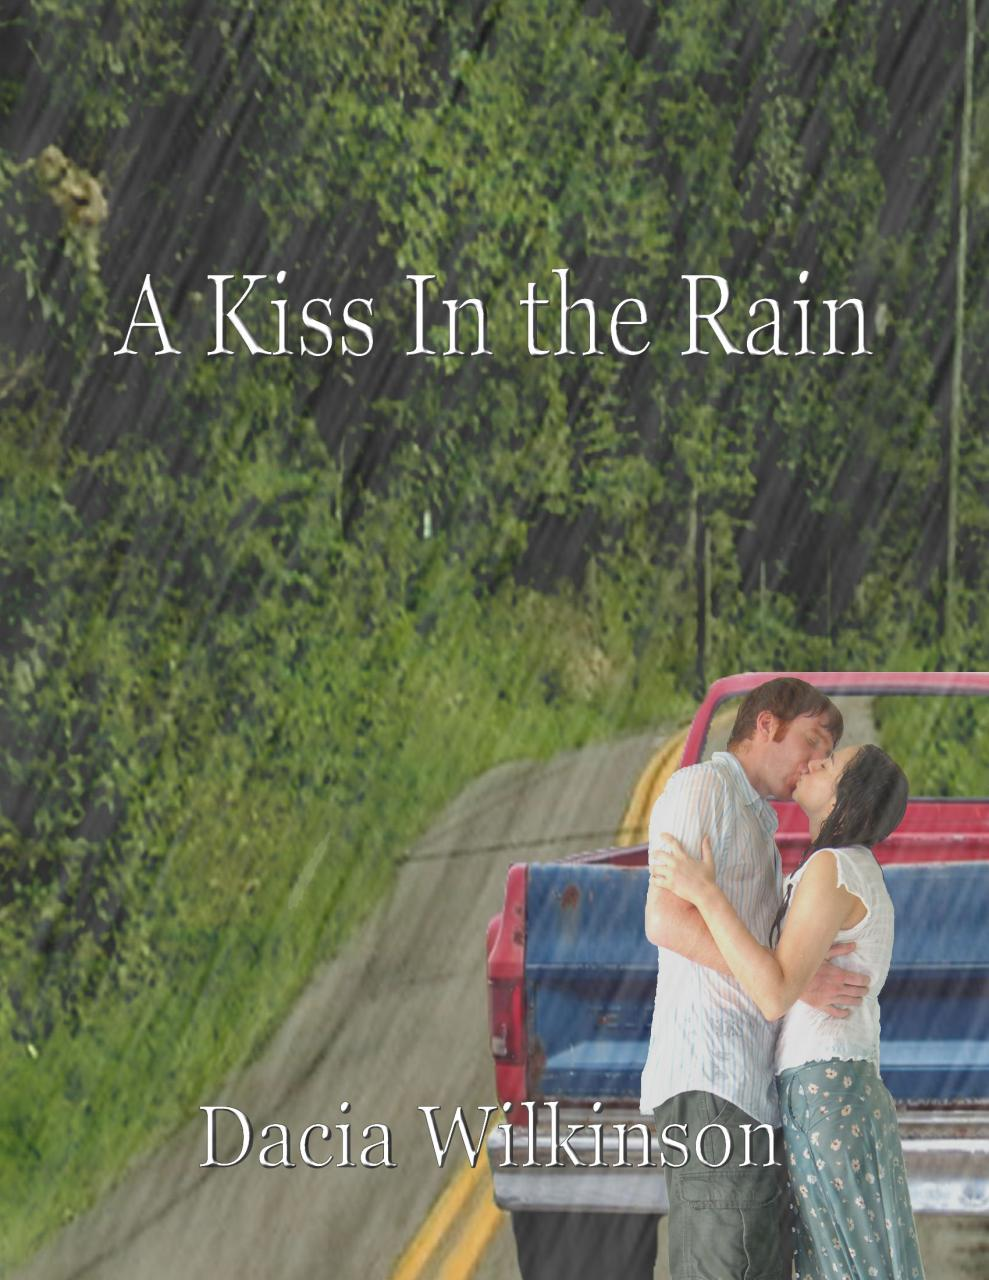 Wilkinsons Inspirational Fiction Romance Novel A Kiss In The Rain